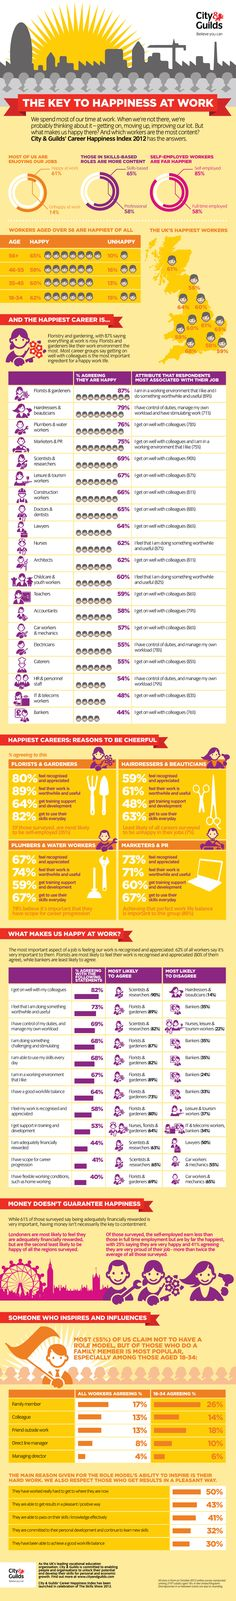 How To Stay Happy In Your Job [INFOGRAPHIC]. Staying happy in your job is important, and this infographic from City & Guilds using their Happiness Index shows how to remain in a good state in your job. Info Board, Career Success, Career Advice, Happy At Work, Stay Happy, Cv Curriculum Vitae, Coaching, Key To Happiness, Happiness Project